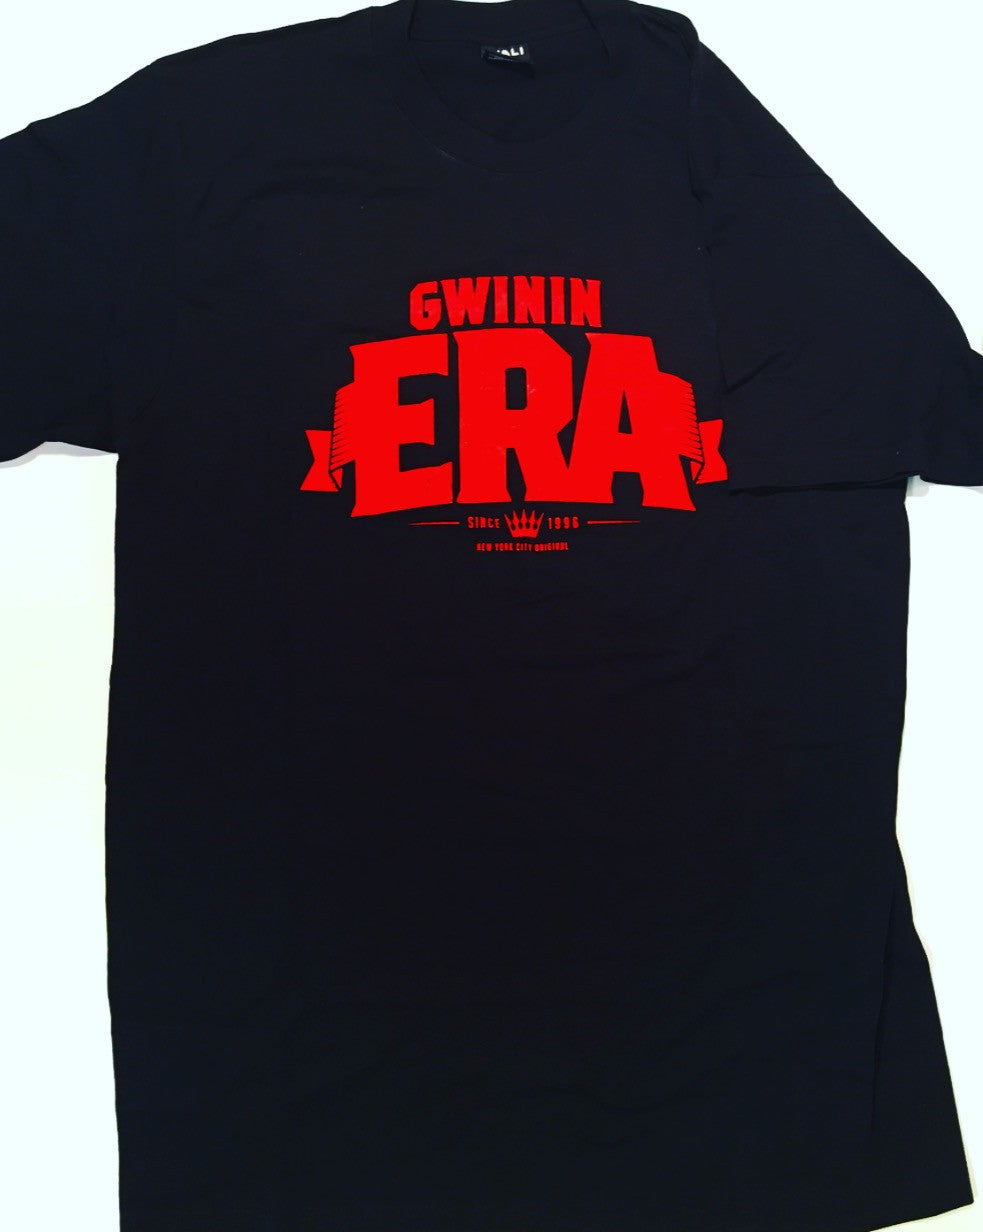 Black Gwinin Era T-Shirt